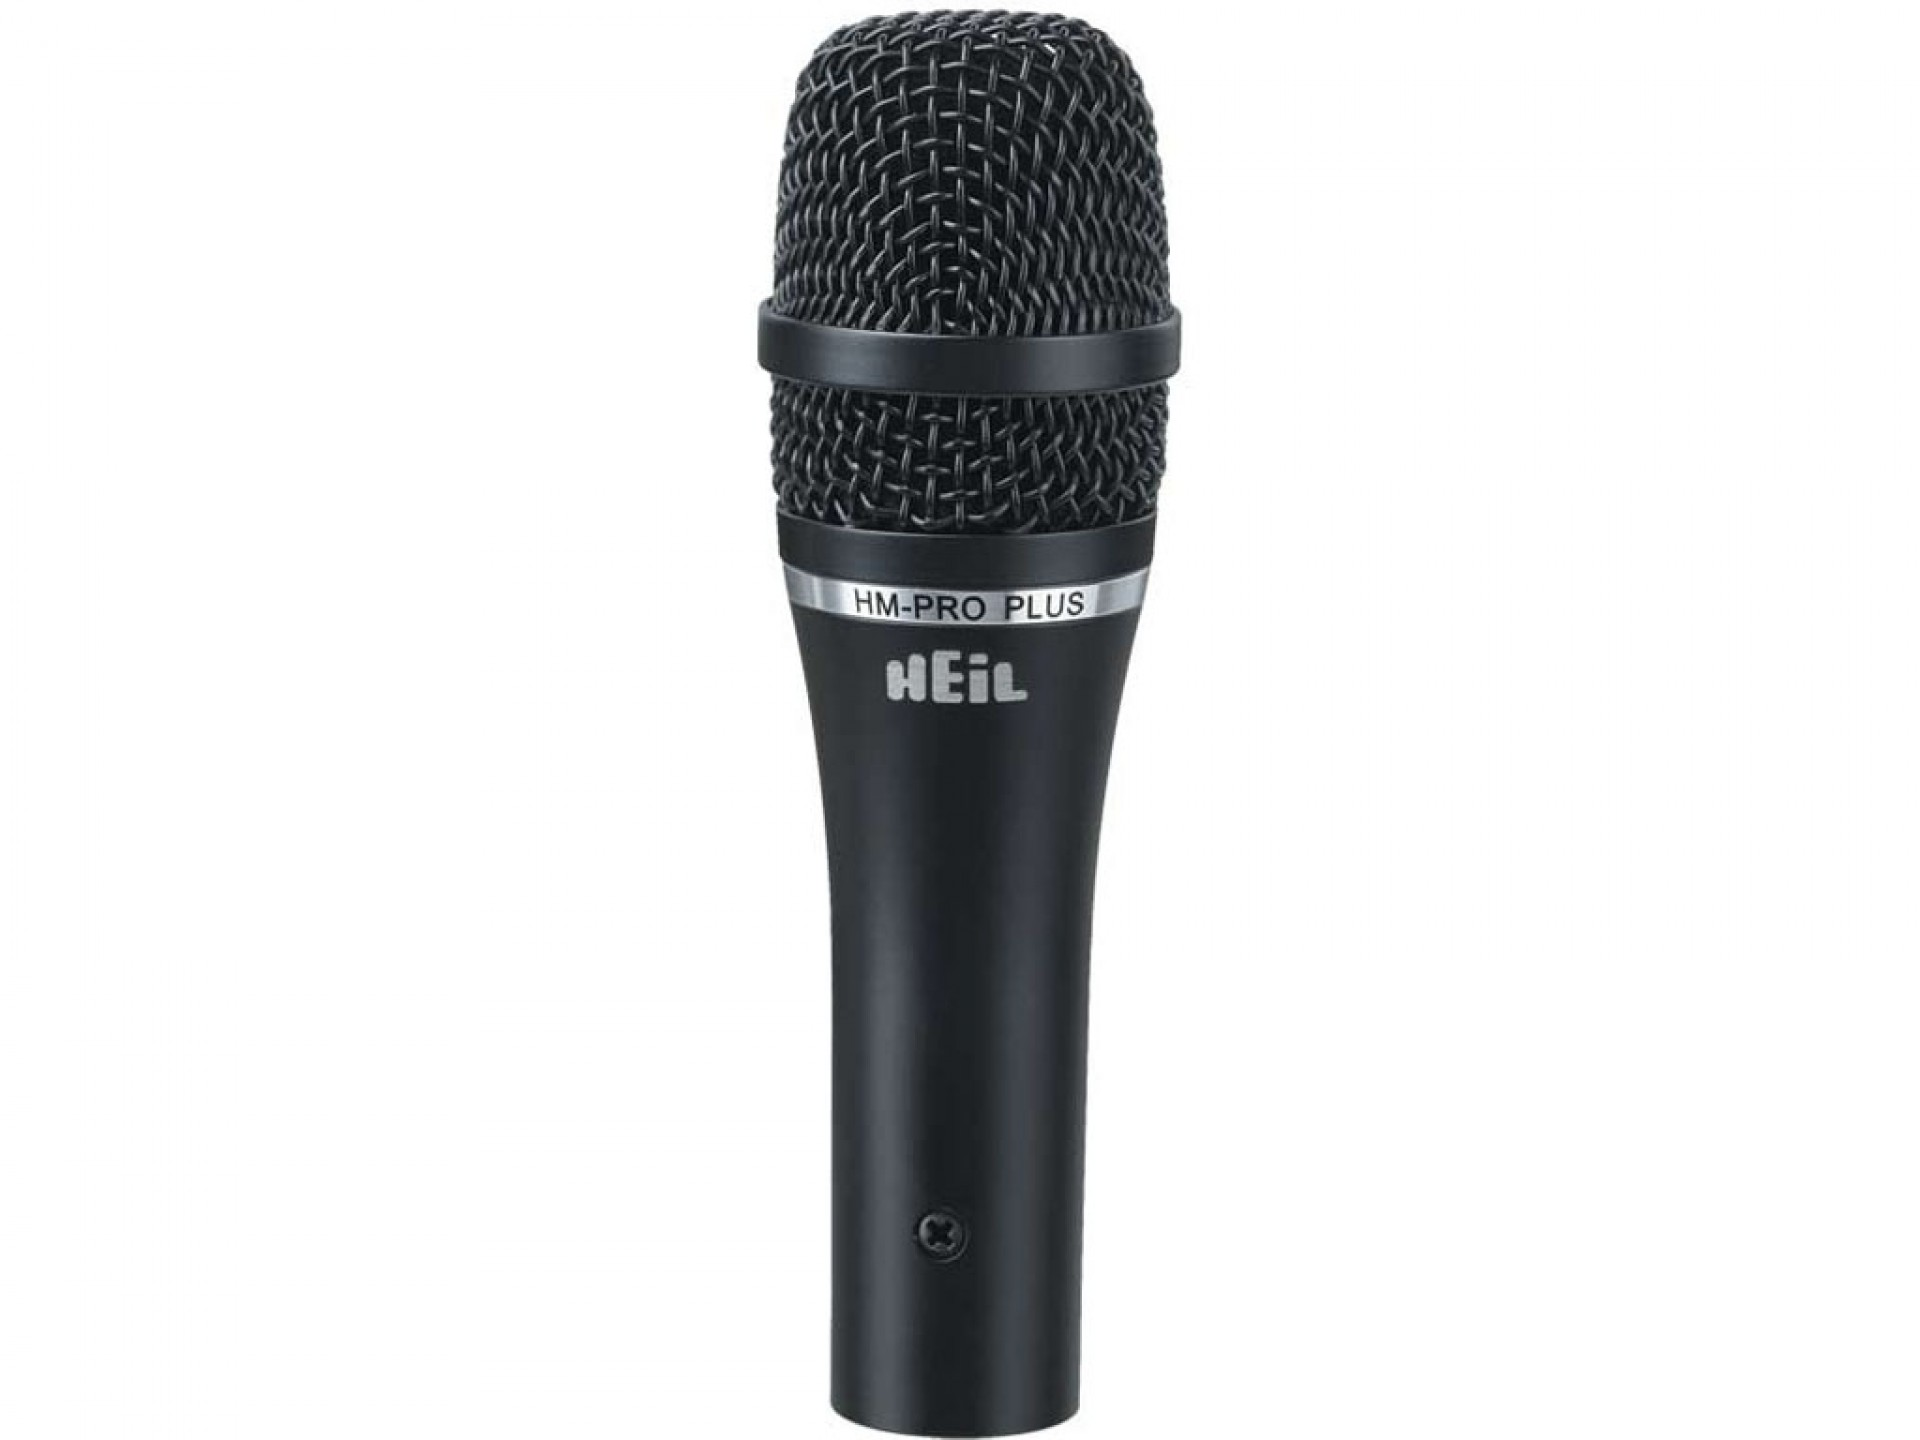 Heil Sound Handy Mic Pro Plus